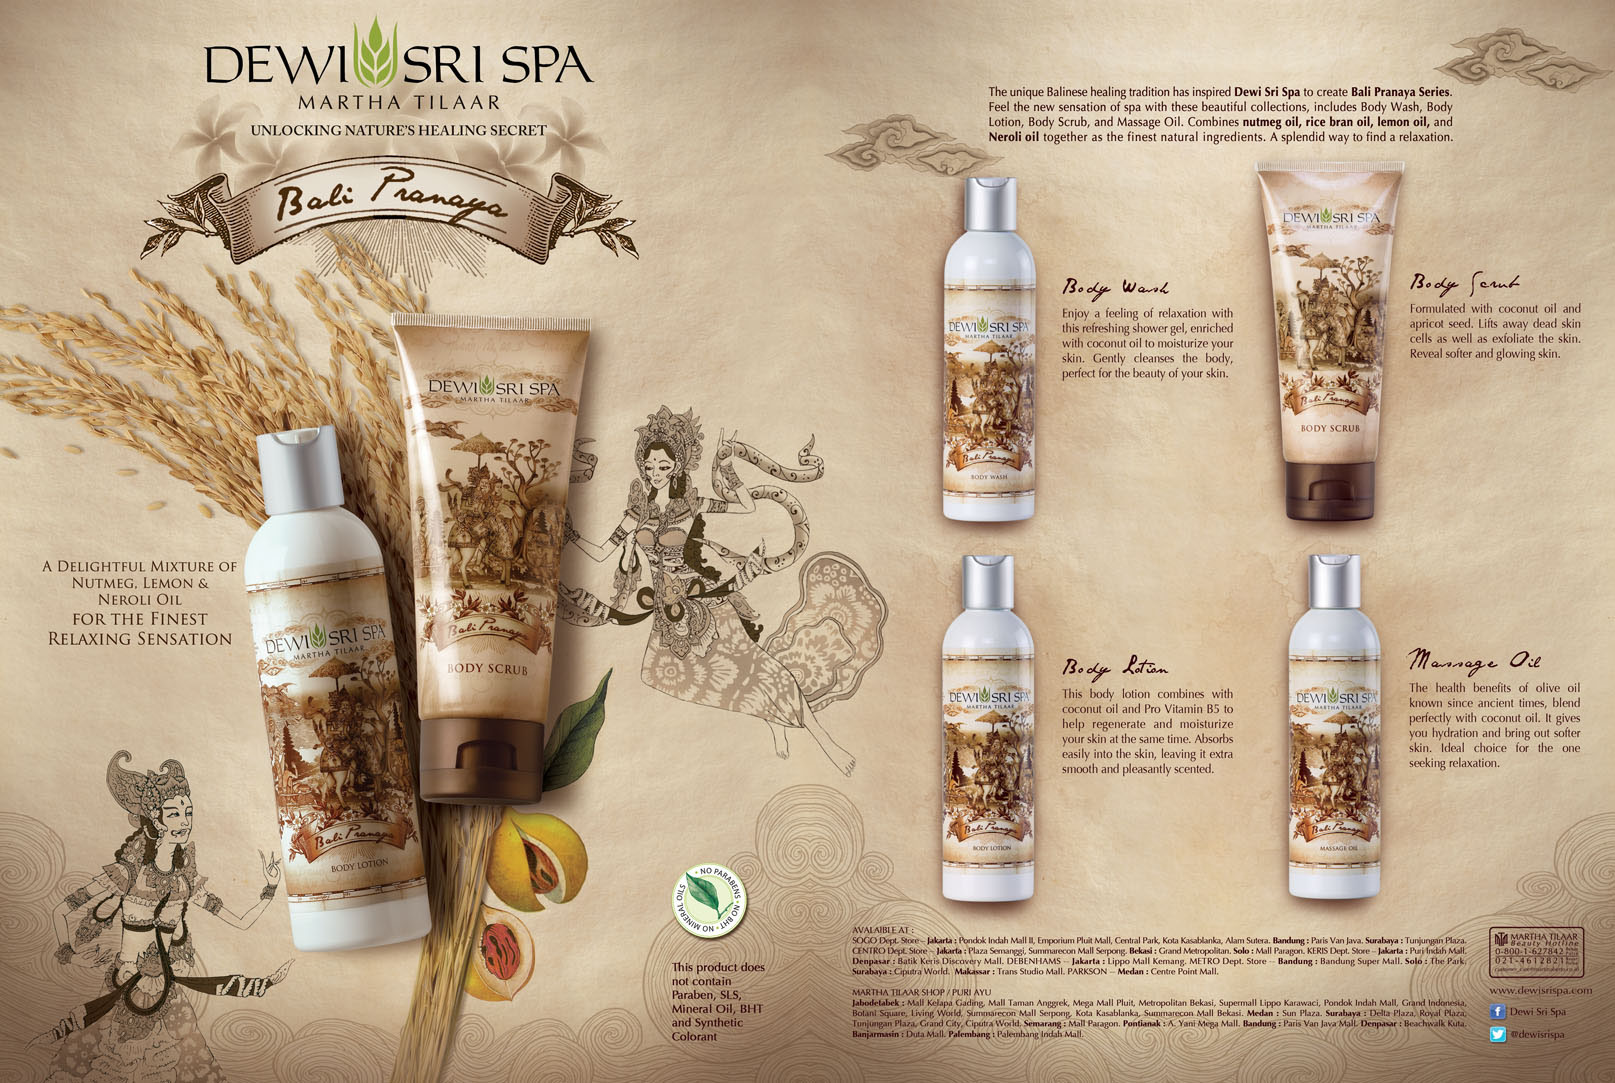 Dewi Sri Spa - Bali Pranaya Series on Behance